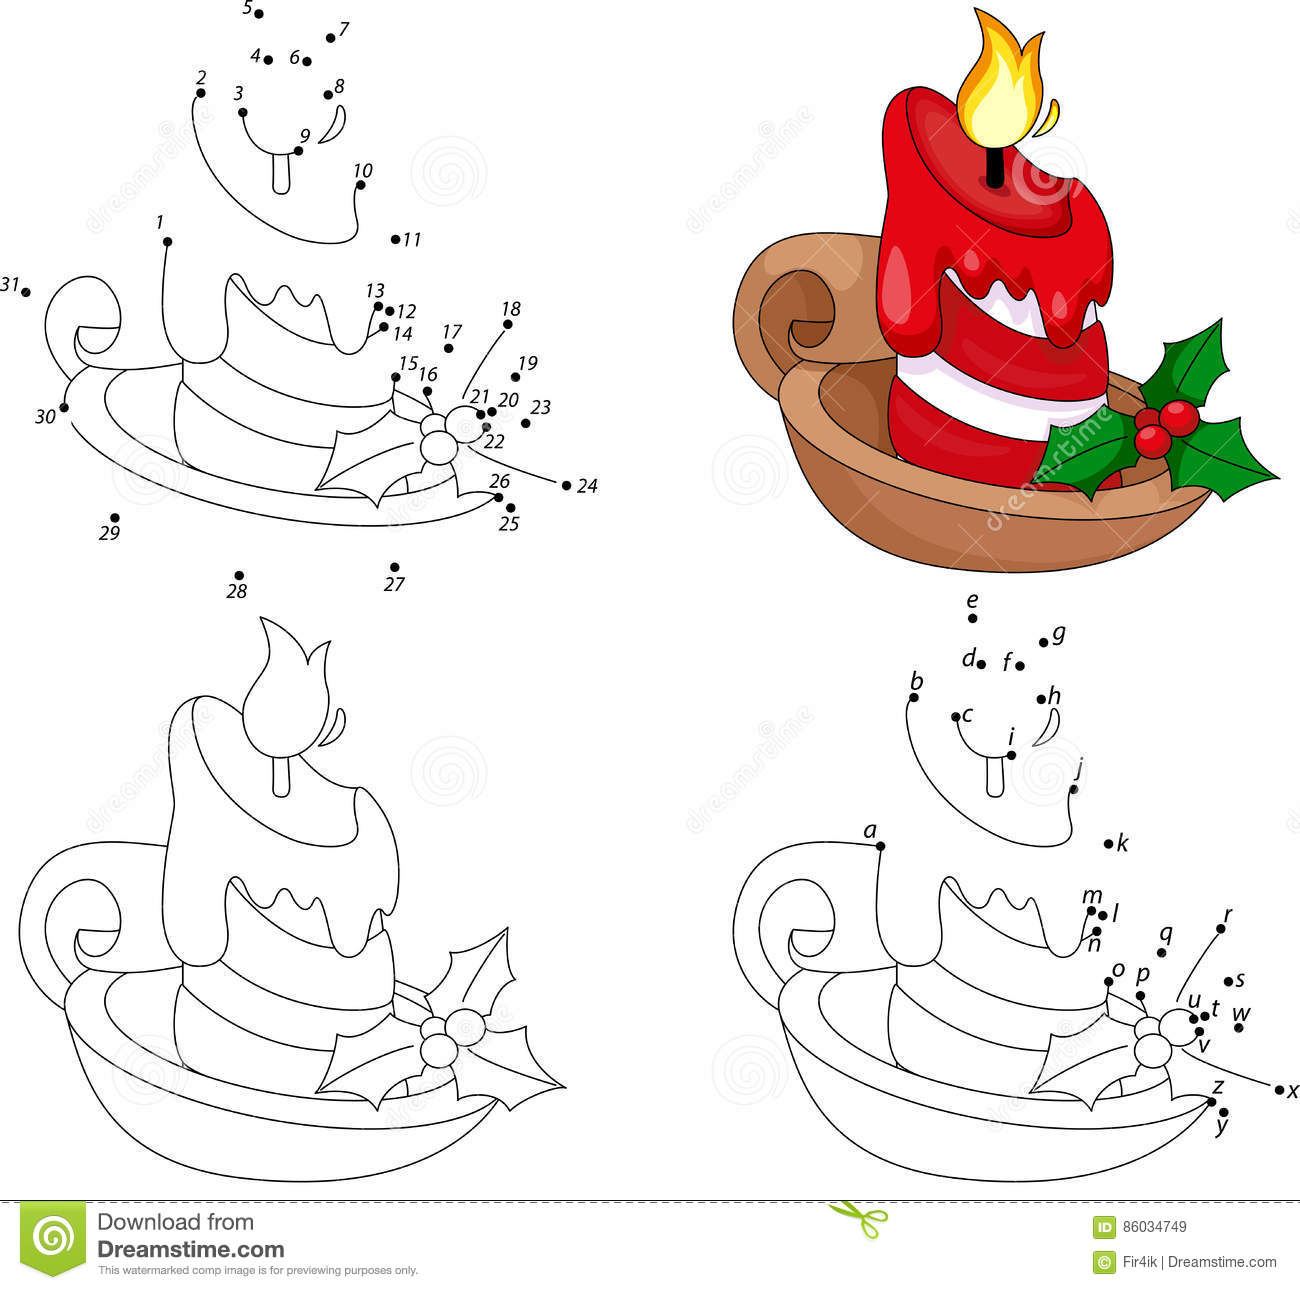 Book Candle Cartoon Christmas Coloring Educational Game